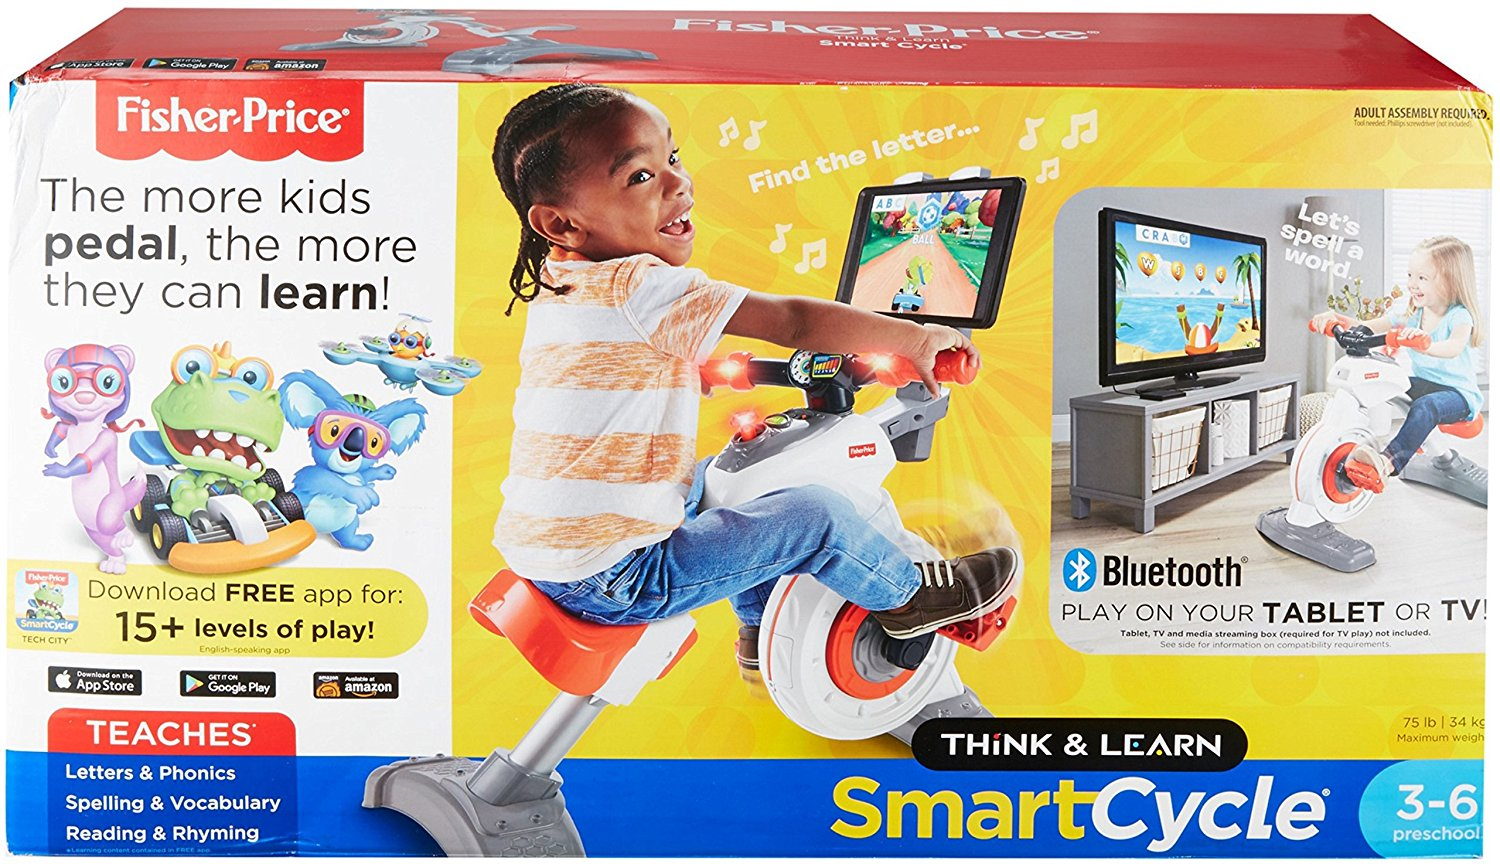 Fisher-Price Think & Learn Smart Cycle6